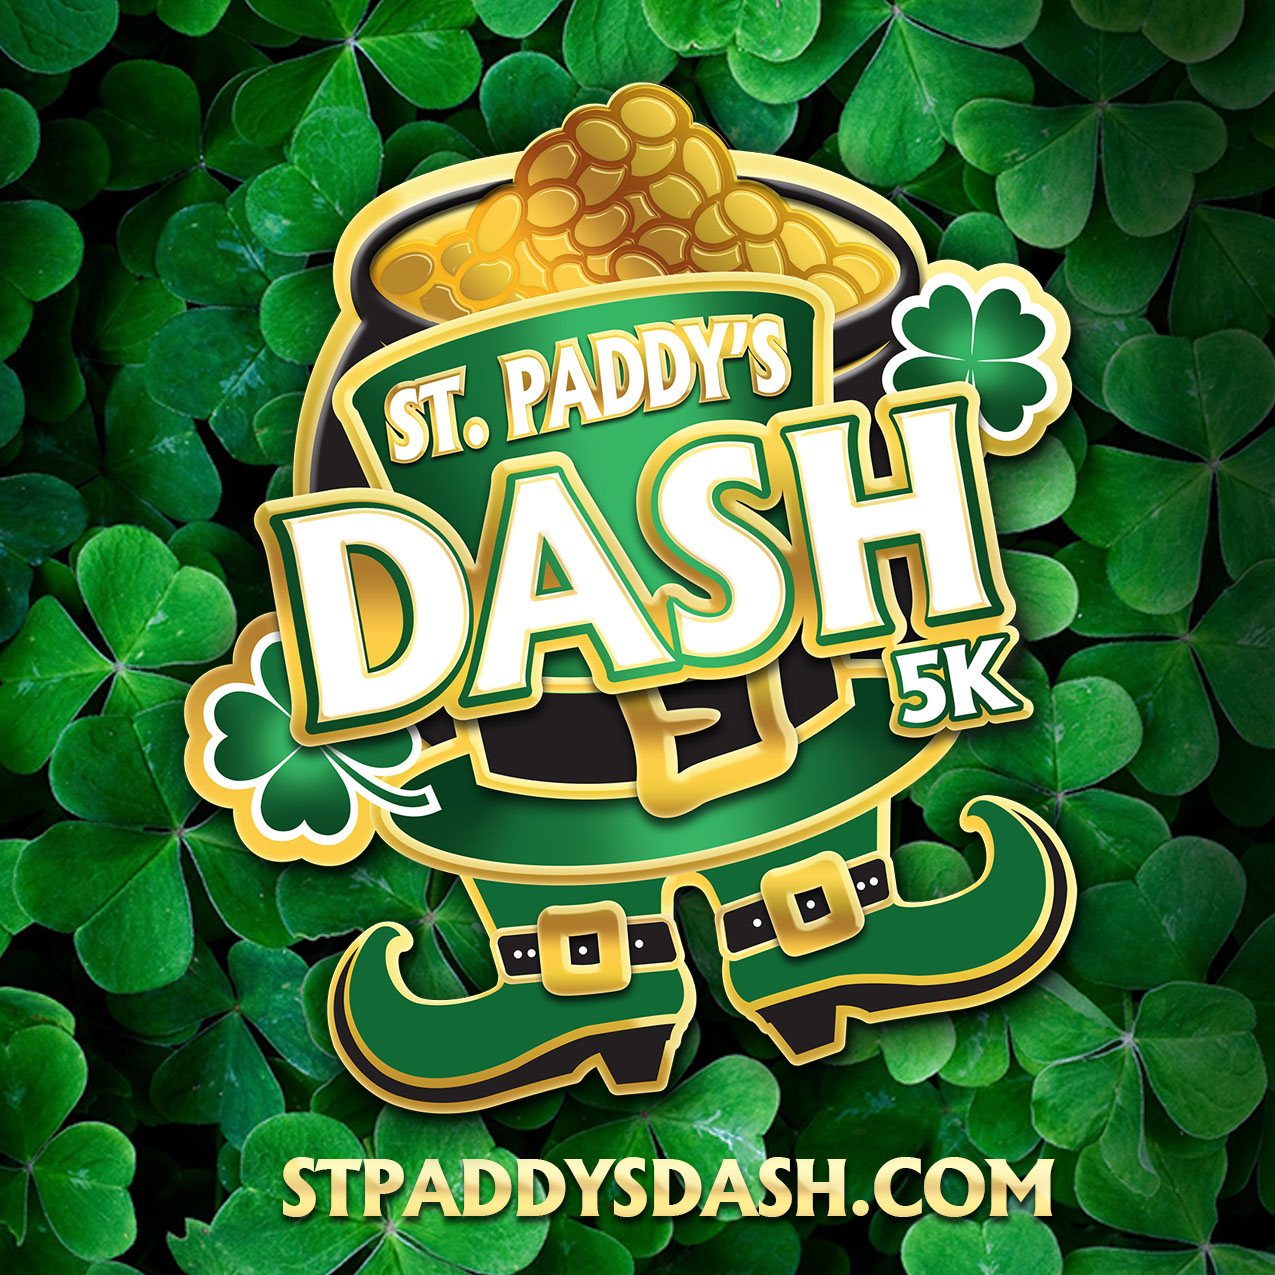 Register for the 2018 St. Paddy's Dash